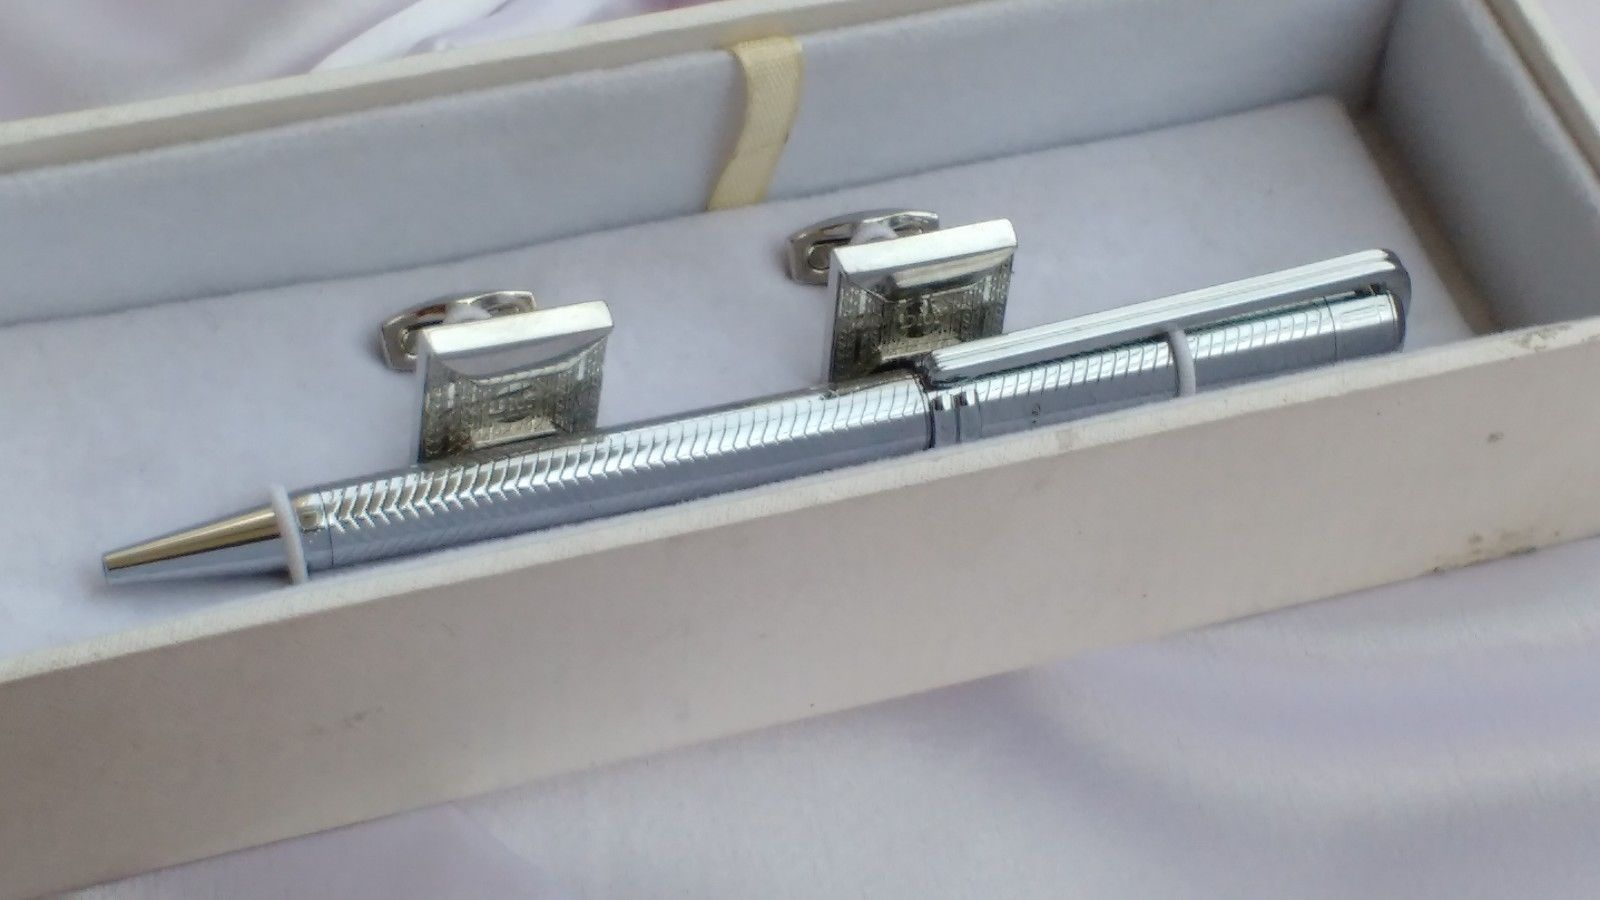 Christian Dior ball point pen with cufflinks - Rare collection